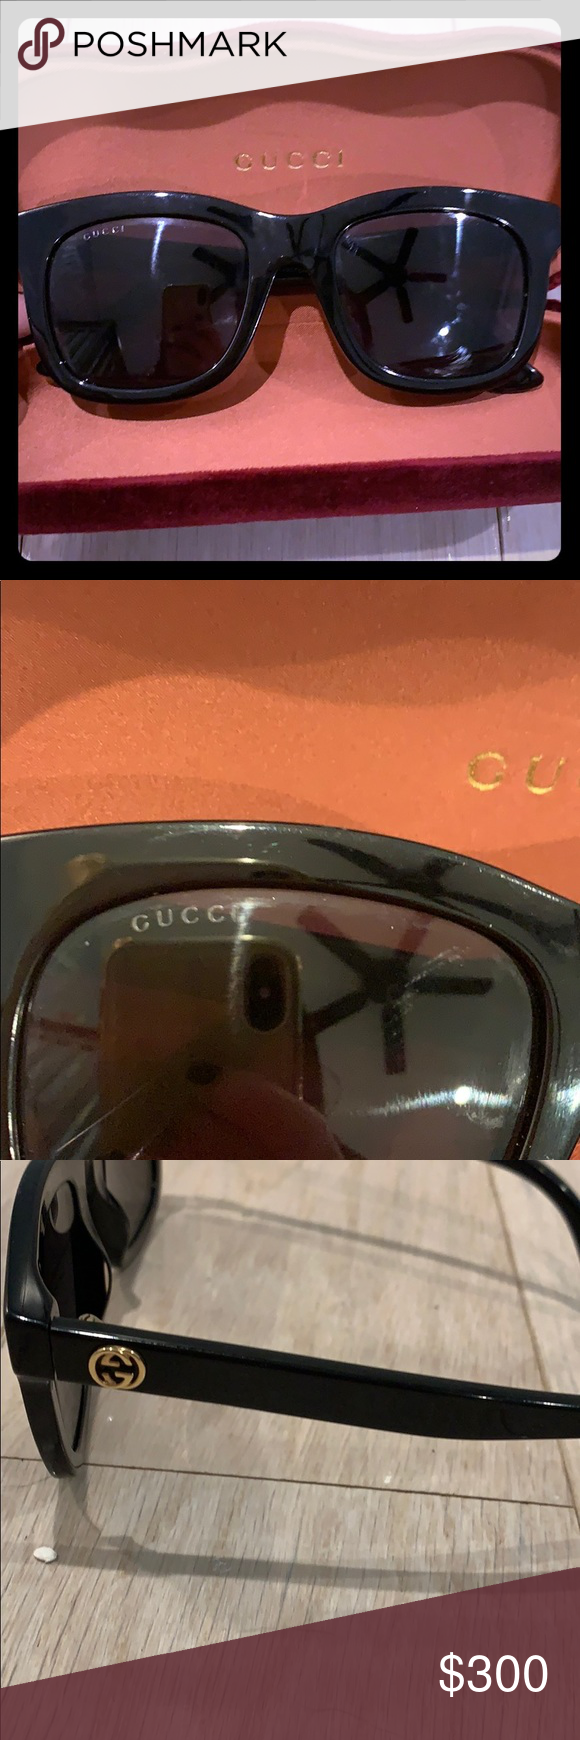 Gucci women's sunglasses Gucci women's rectangle sunglasses with gold Gucci symbol  52mm lens 100% UV protection  Made in Italy Gucci style number GG0326 Comes with maroon velvet case  Cleaning cloth  Authenticity certificate card  Tag not attached  Purchased from Nordstrom (can provide picture of order upon request) Gucci Accessories Sunglasses